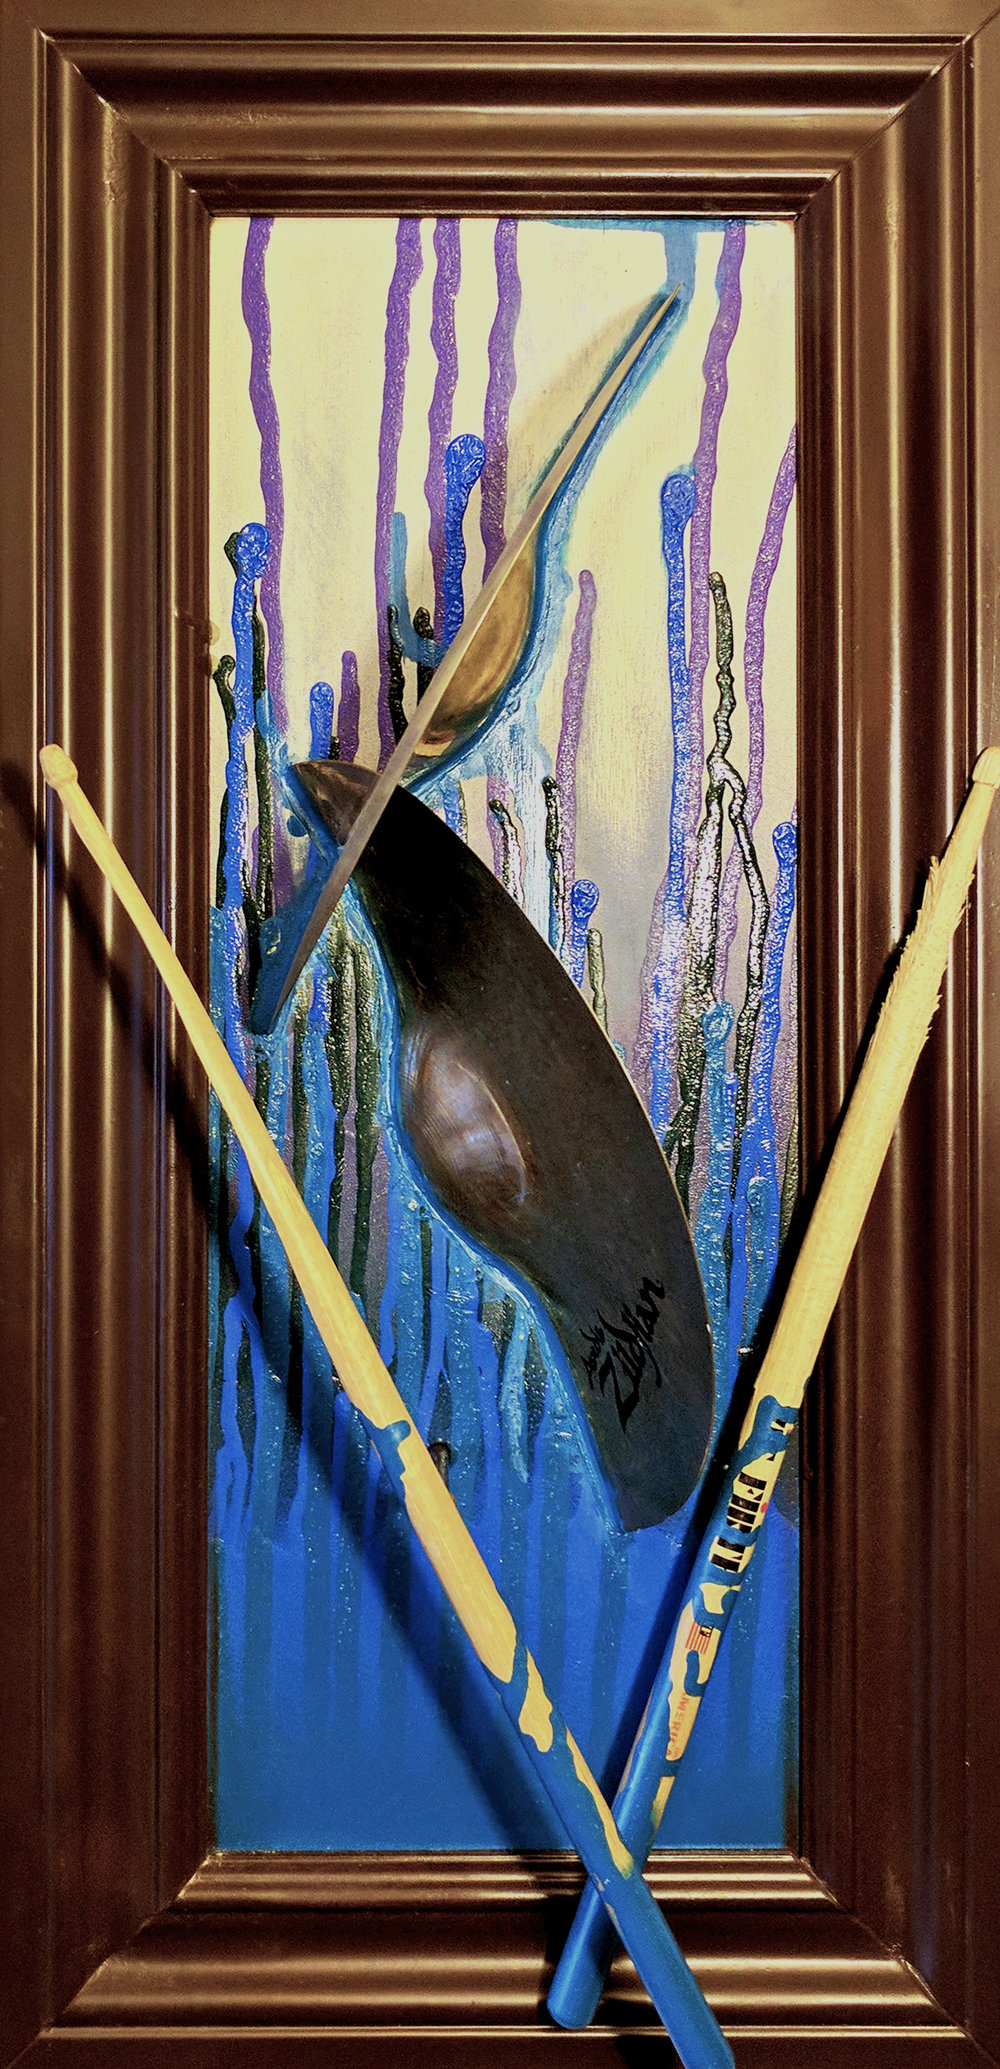 'The Beat'  Broken sticks and cymbals from Kyle Veazey (of Duke Evers, My Goodness), Mixed Media.2016